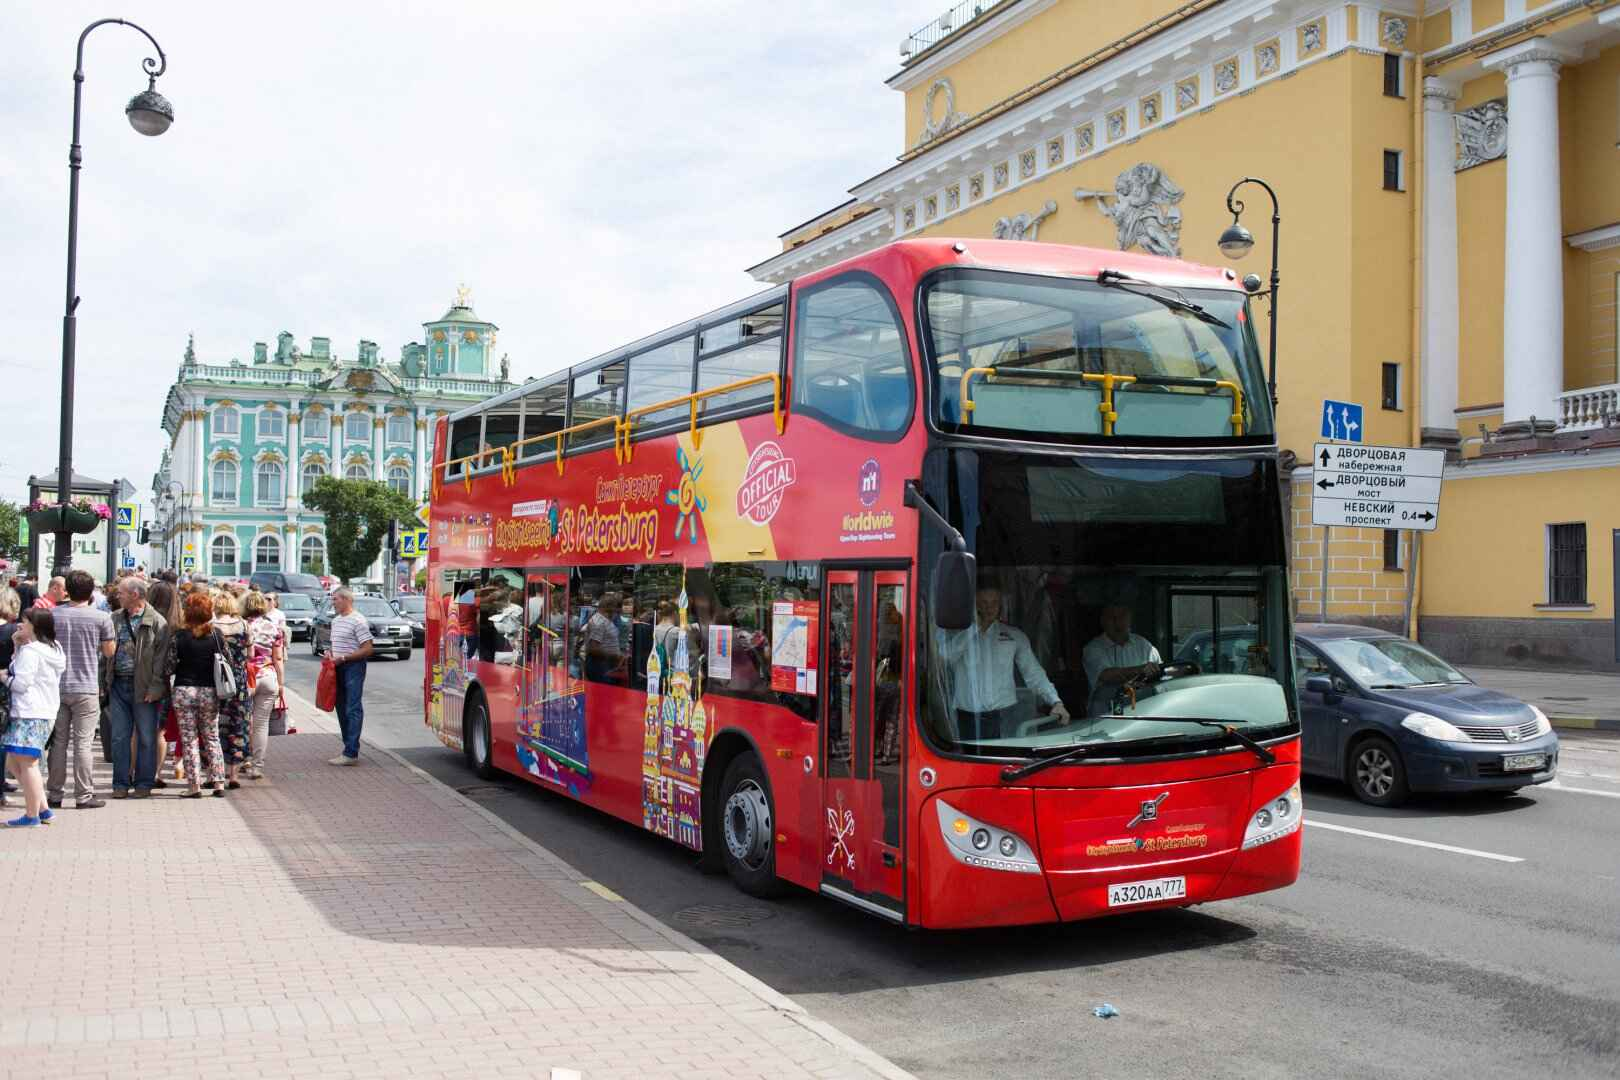 : Sightseeing tour across St. Petersburg by bus | Buses City Sightseeing | Card St. Petersburg City Pass, Фото 7